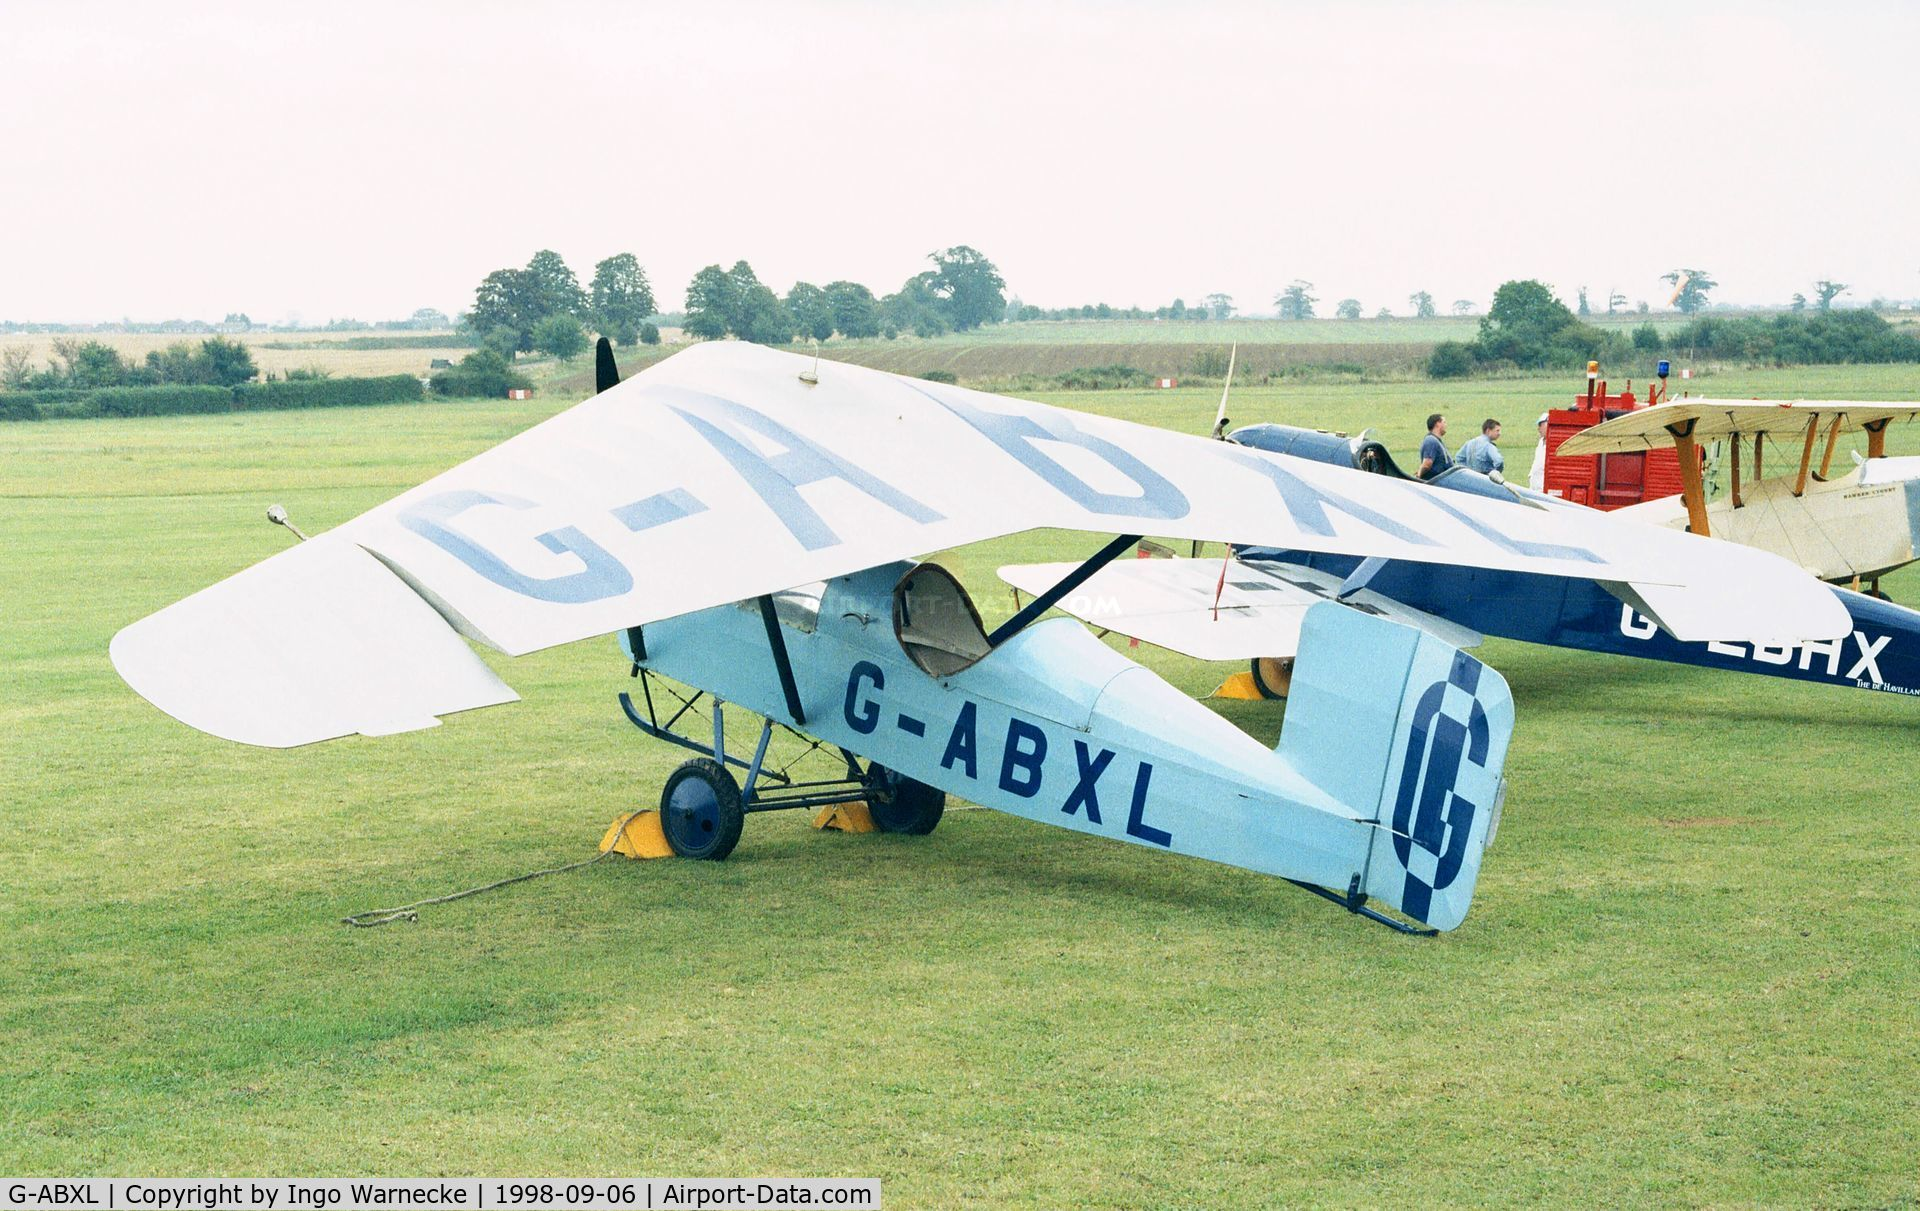 G-ABXL, Granger Archaeopteryx C/N 3A, Granger Archeopterix of the Shuttleworth Collection at the 1998 Shuttleworth Pageant